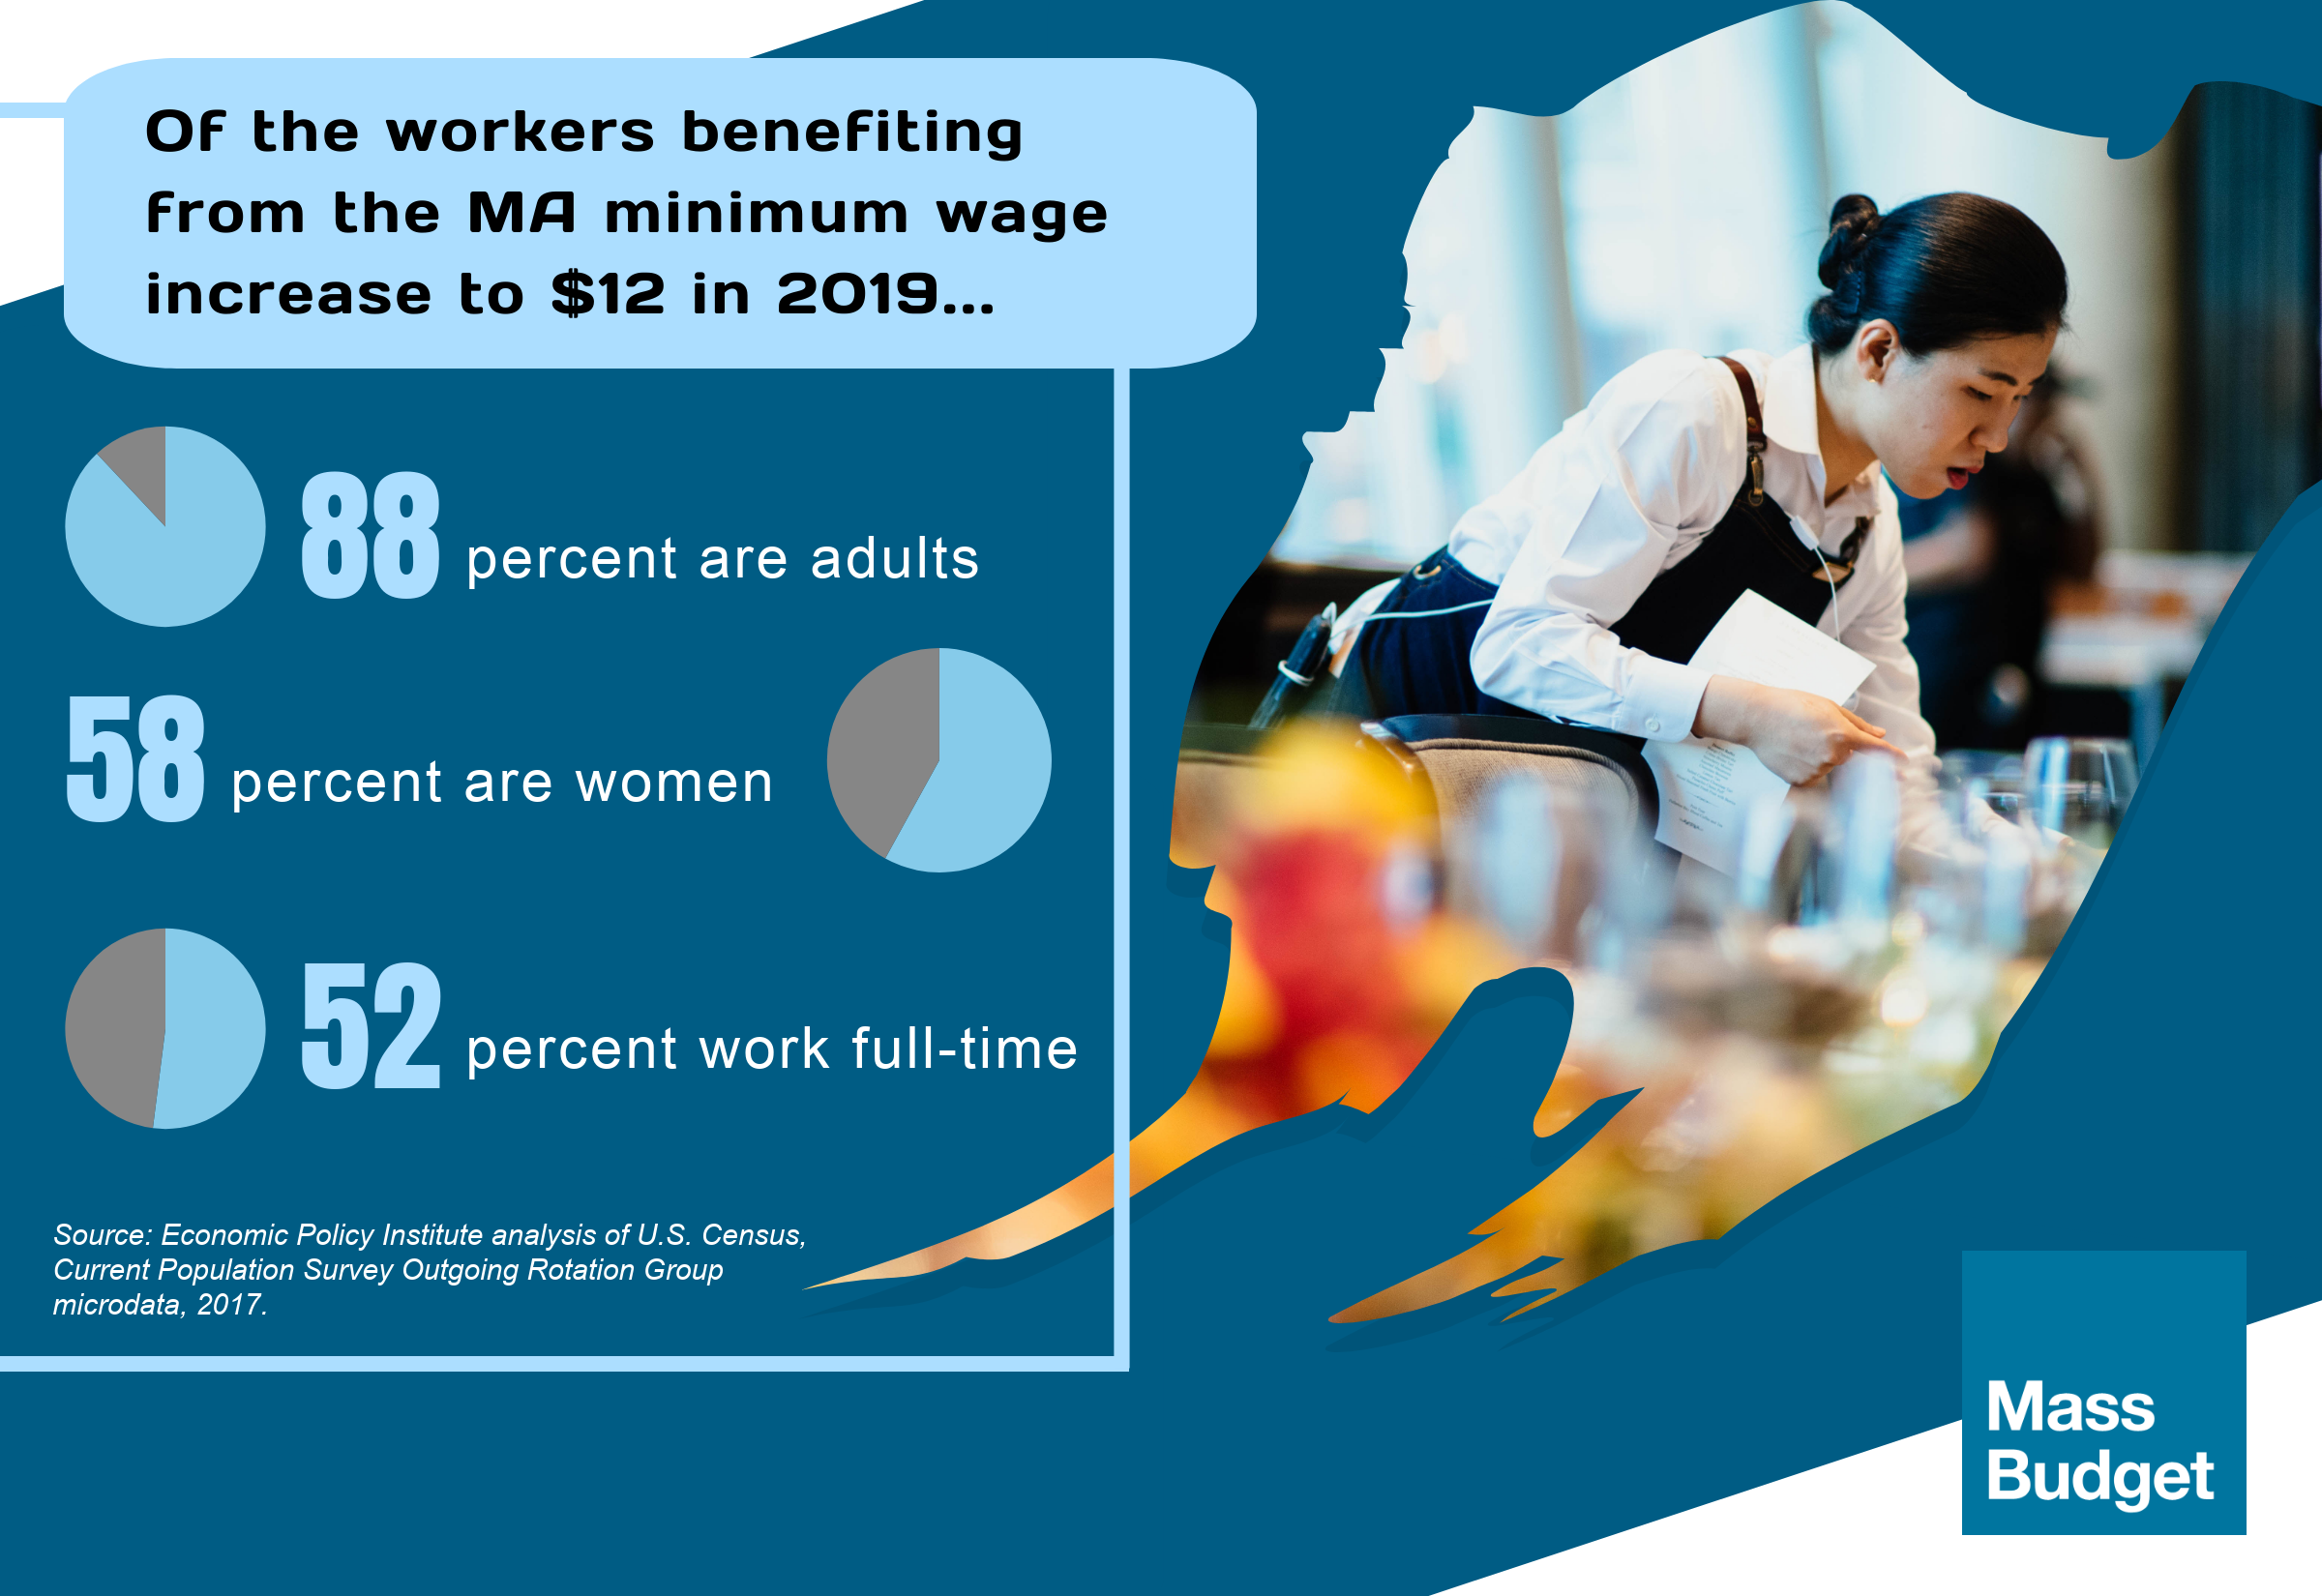 Of workers benefiting from increase to $12: 88% are adults; 58% are women; 52% work full-time